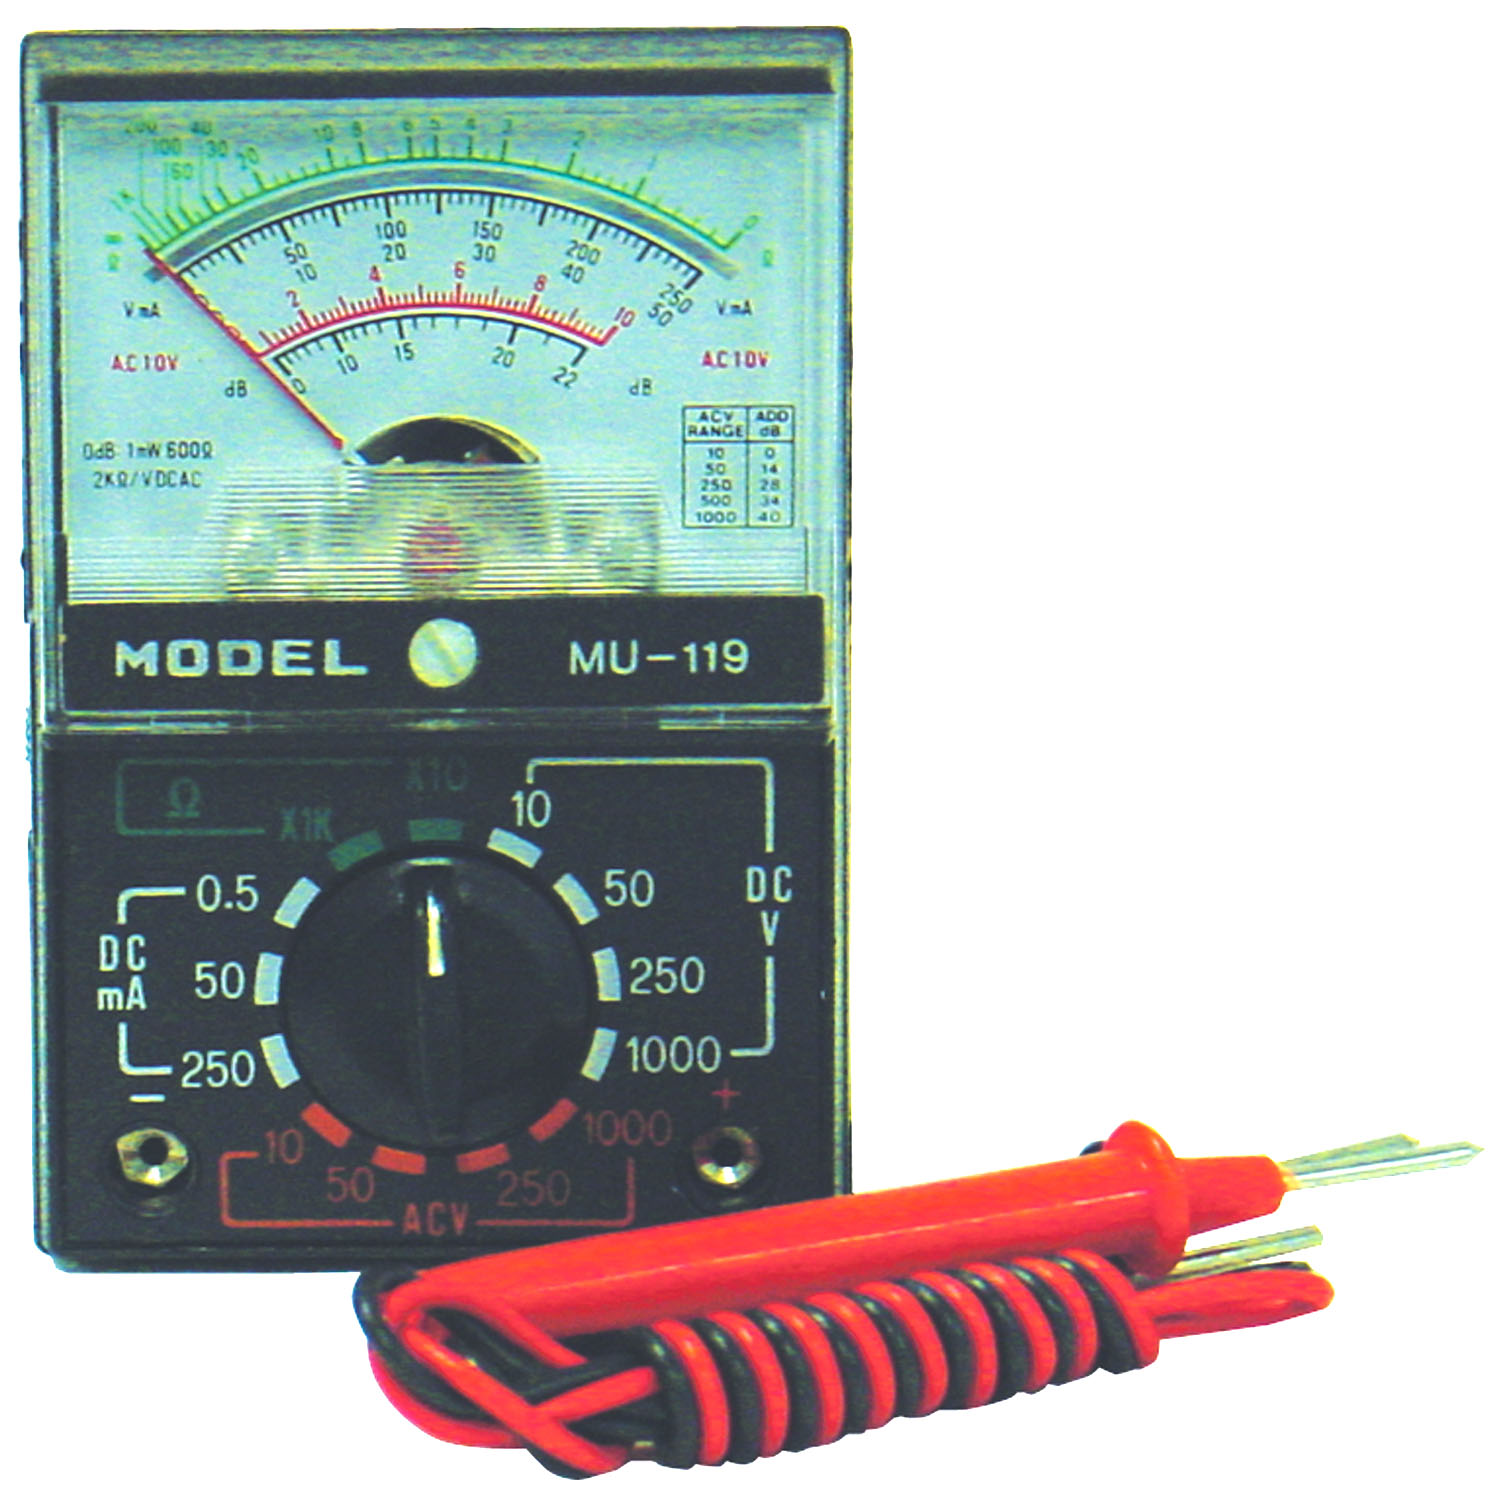 2K OHMS/VOLT PORTBLE MULTITEST METER